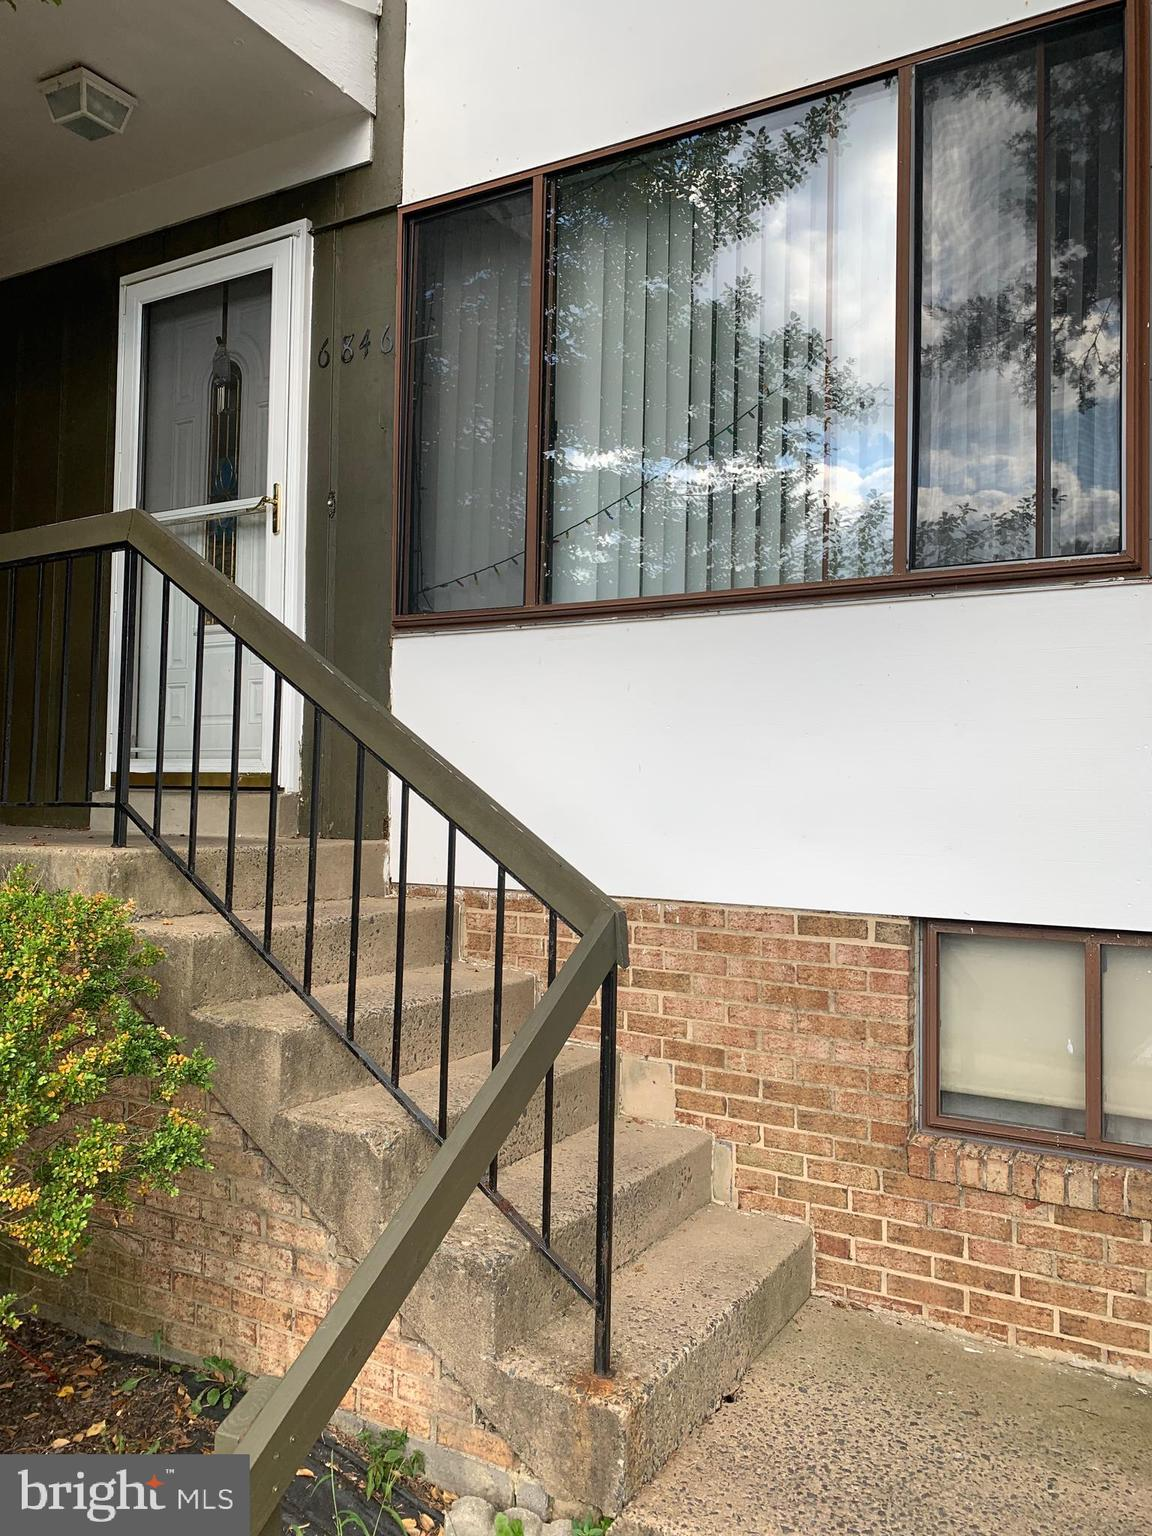 THIS 3-LEVEL, 3-BEDROOM, 2-FULL AND 1-HALF BATH TOWNHOME IS A SHORT SALE AND IS BEING SOLD AS-IS. PLEASE CONTACT YOUR AGENT FOR A SHOWING. THERE IS ONE BANK/ONE LENDER. THANKS FOR YOUR OFFER, LOOK FORWARD TO WORKING WITH YOU.